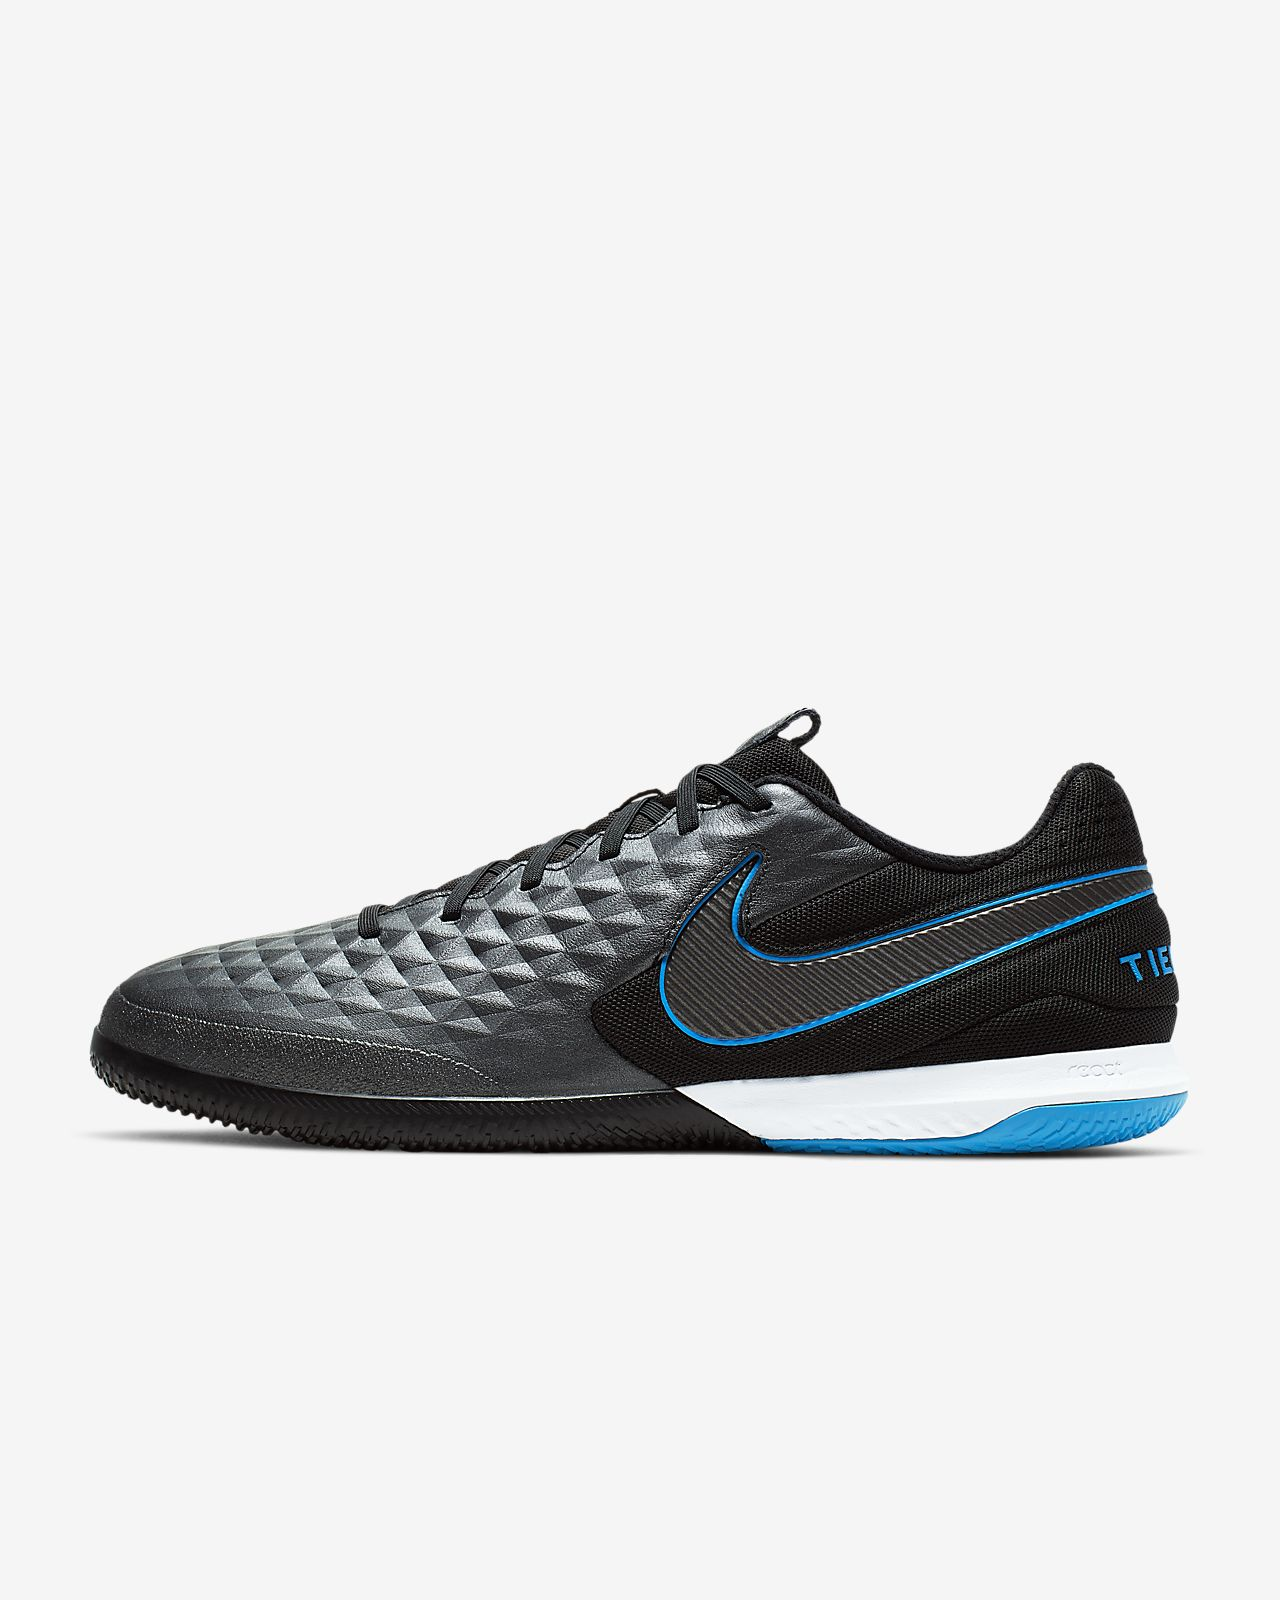 Chaussure de football en salle Nike React Tiempo Legend 8 Pro IC